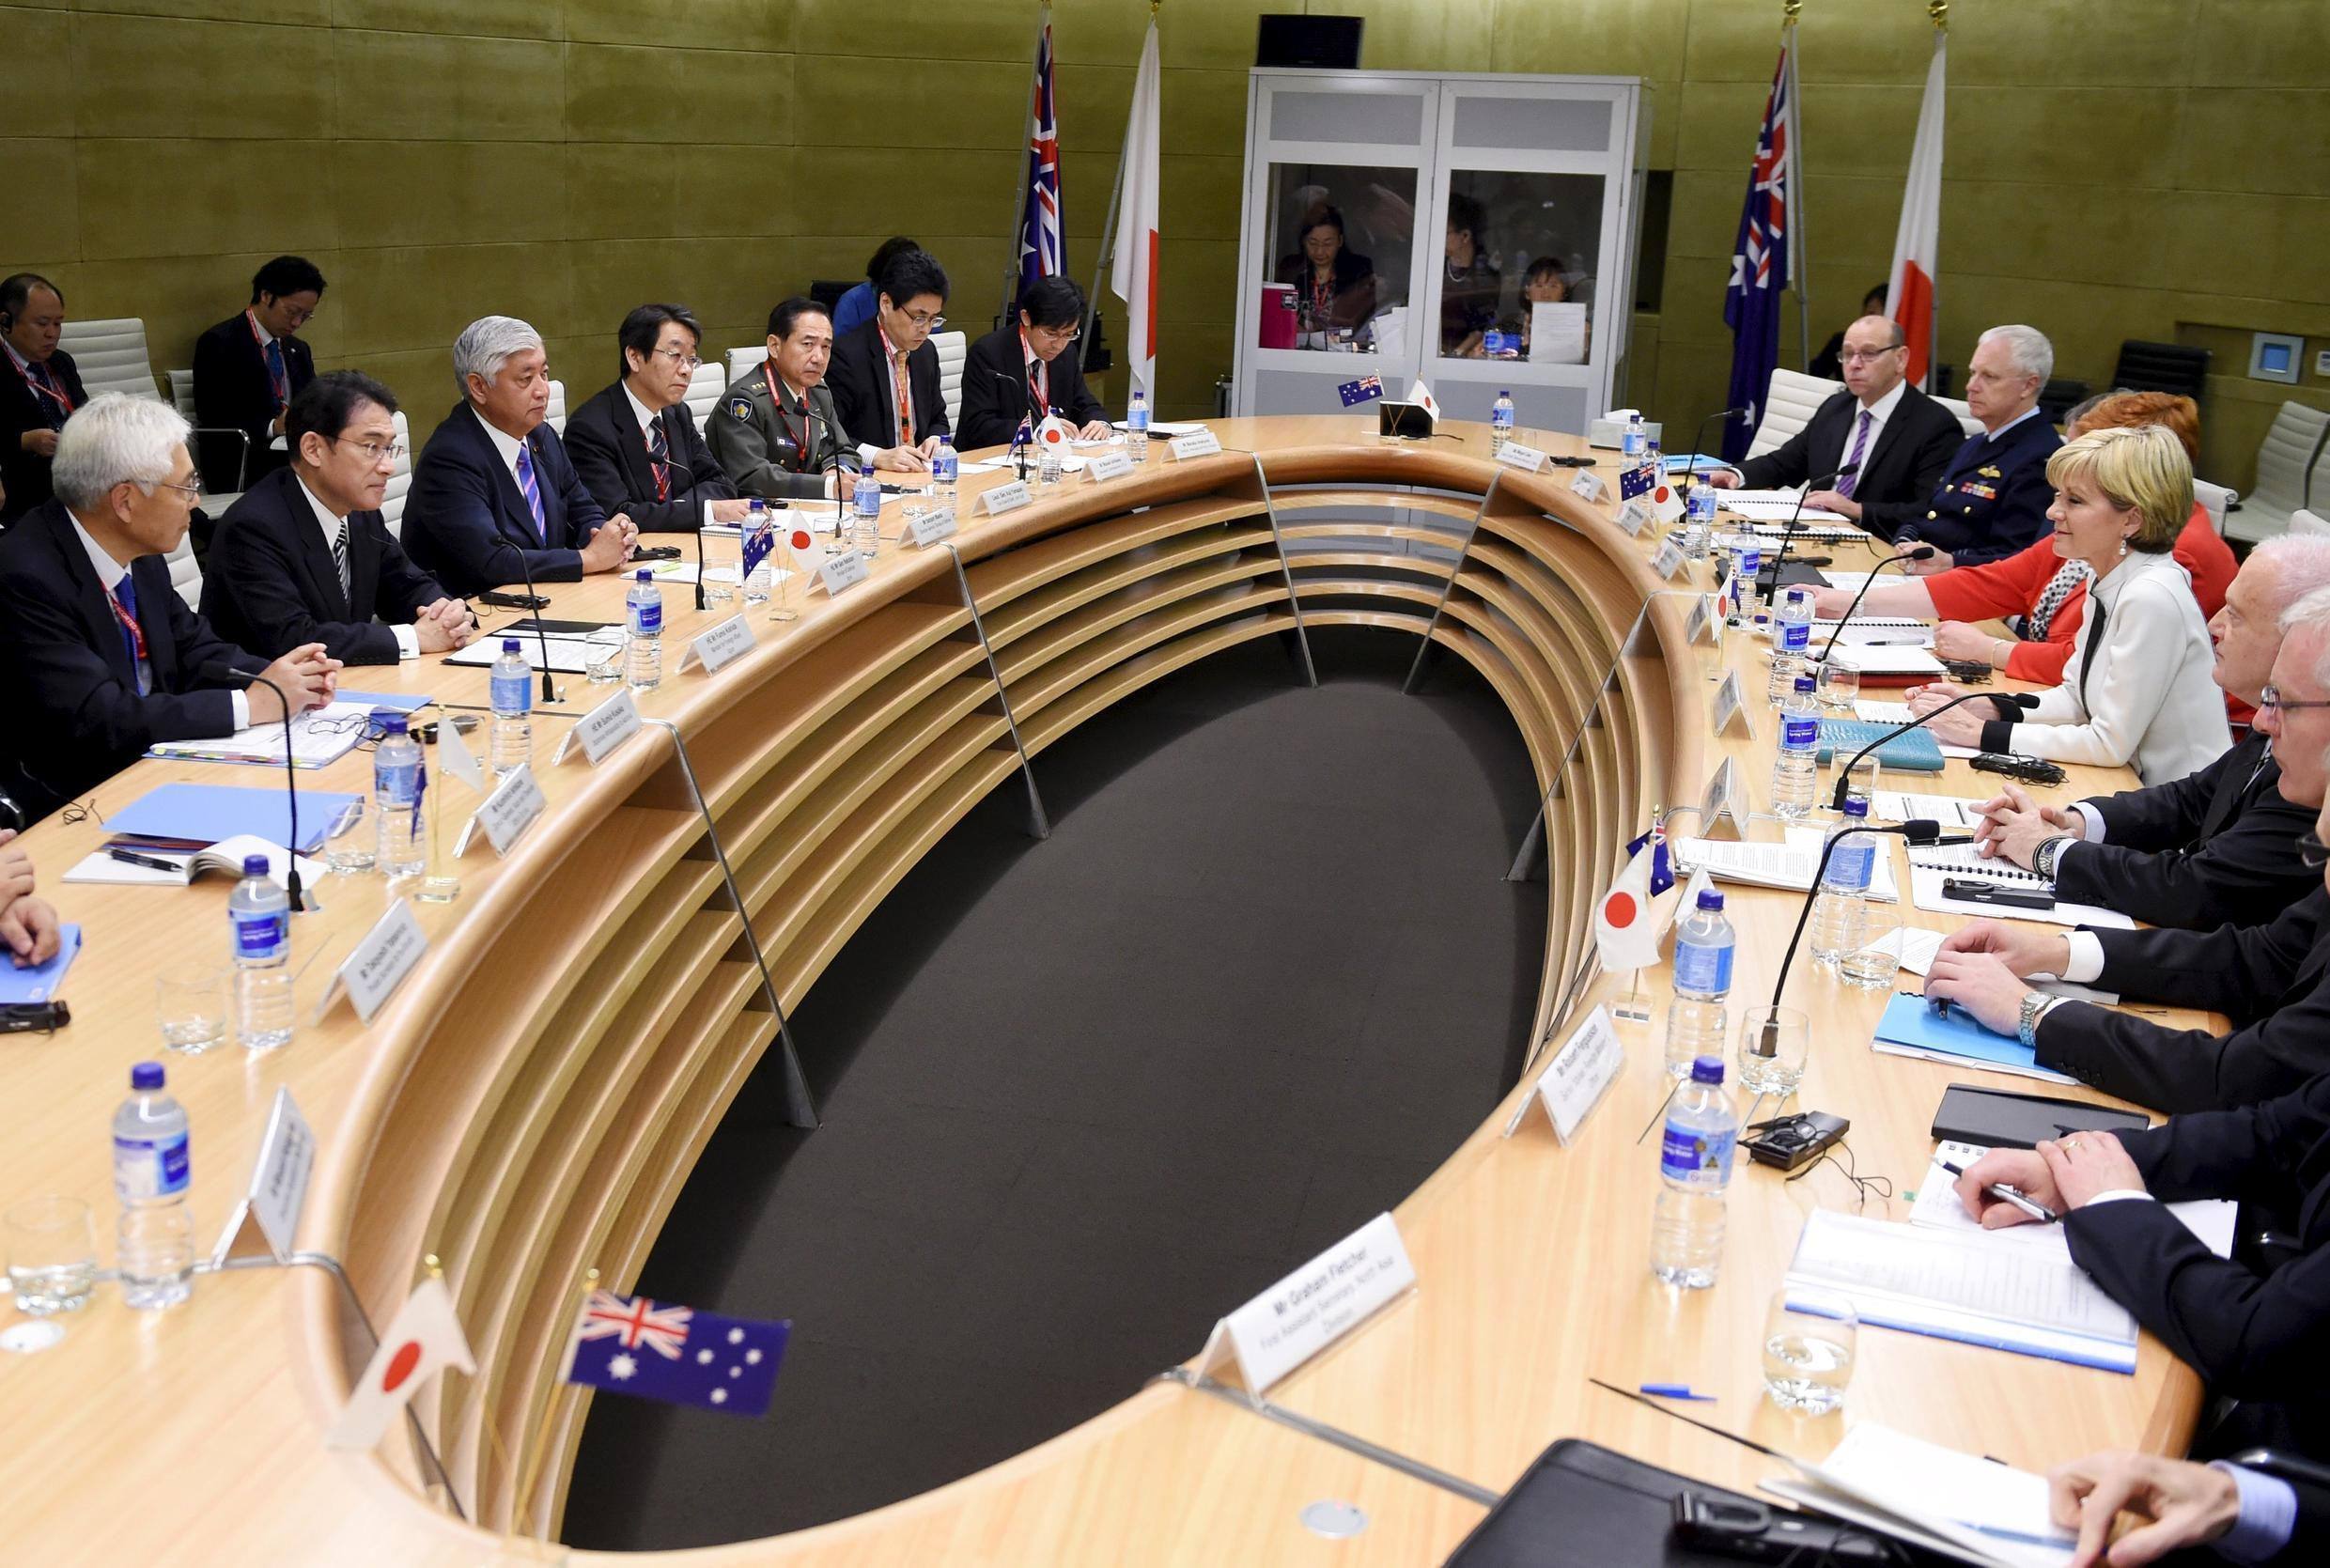 Australian Foreign Minister Julie Bishop (R) sits with Australia's Defence Minister Marise Payne (2nd R) opposite Japan's Defense Minister Gen Nakatani (3rd L) and Japan's Foreign Affairs Minister Fumio Kishida (2nd L) as they hold bilateral talks in Sydne